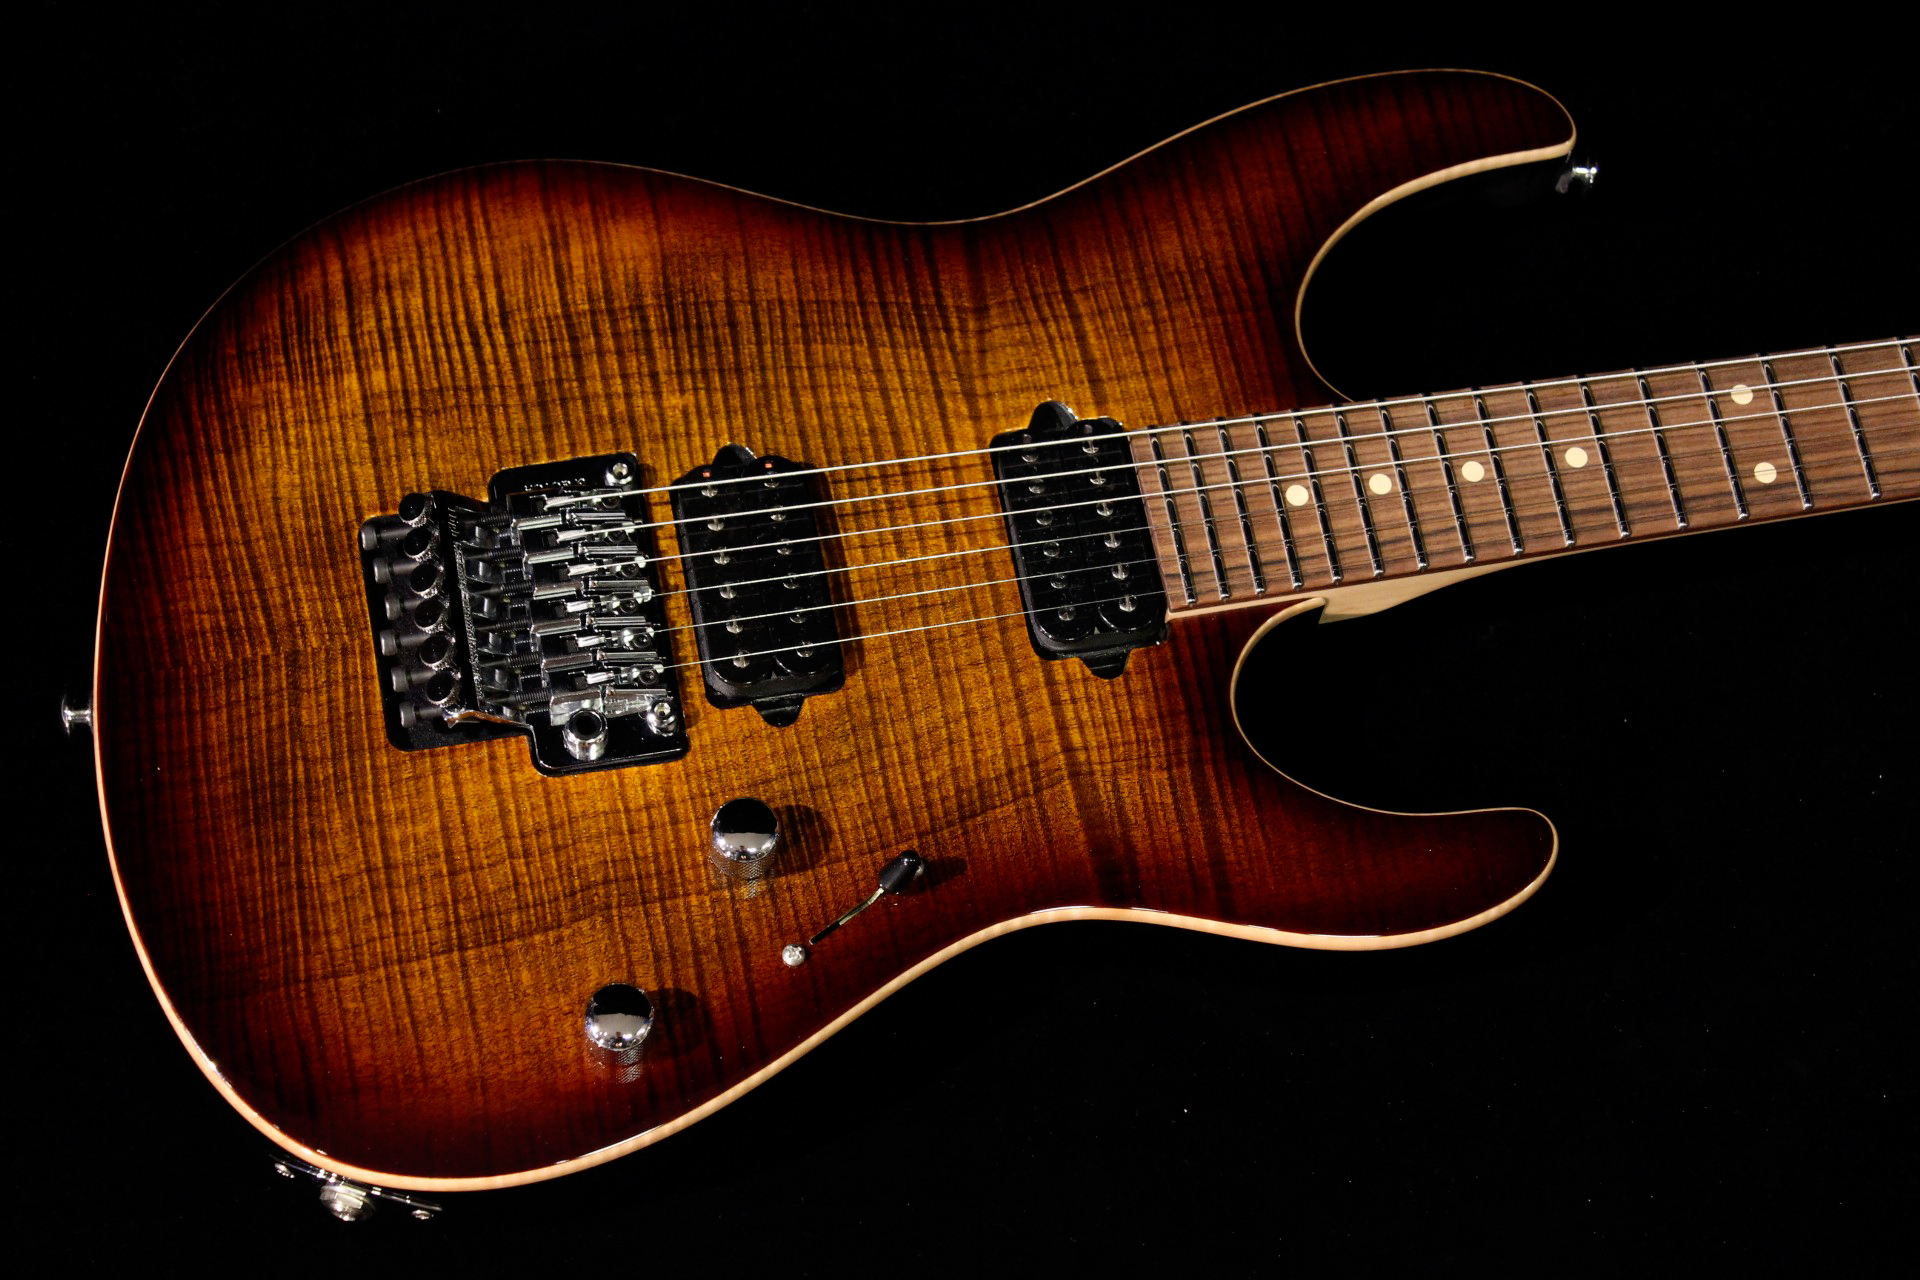 suhr modern pro configuration 2 bengal burst sn 24220 gino guitars. Black Bedroom Furniture Sets. Home Design Ideas